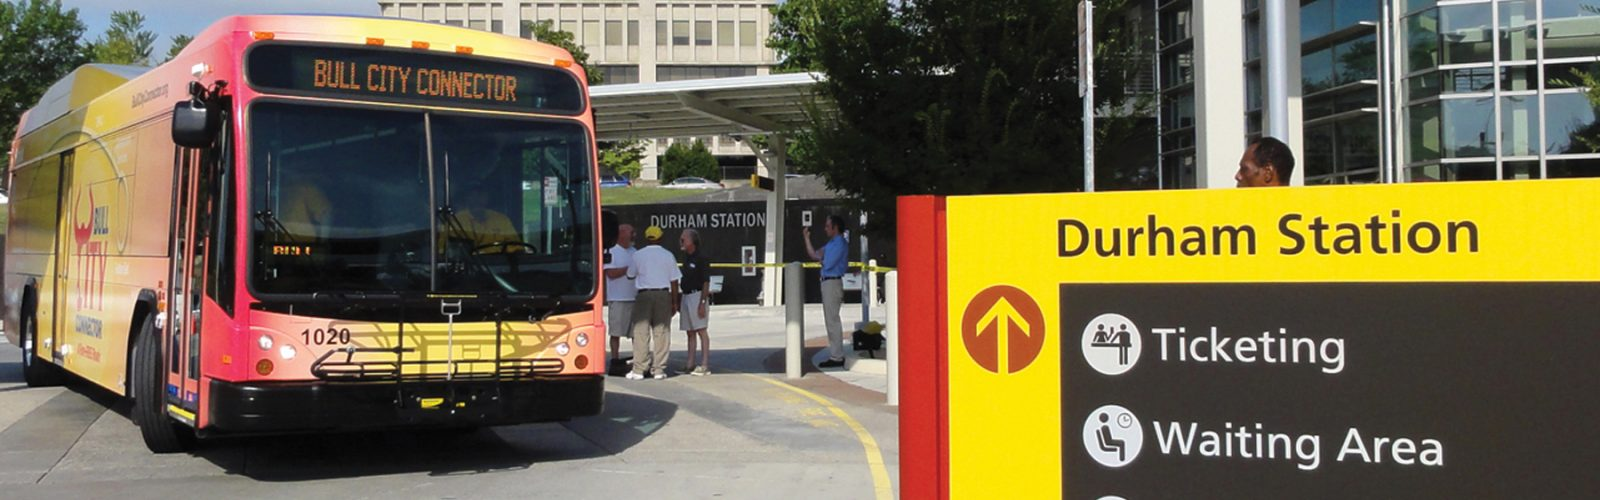 picture of Bull City Connector bus